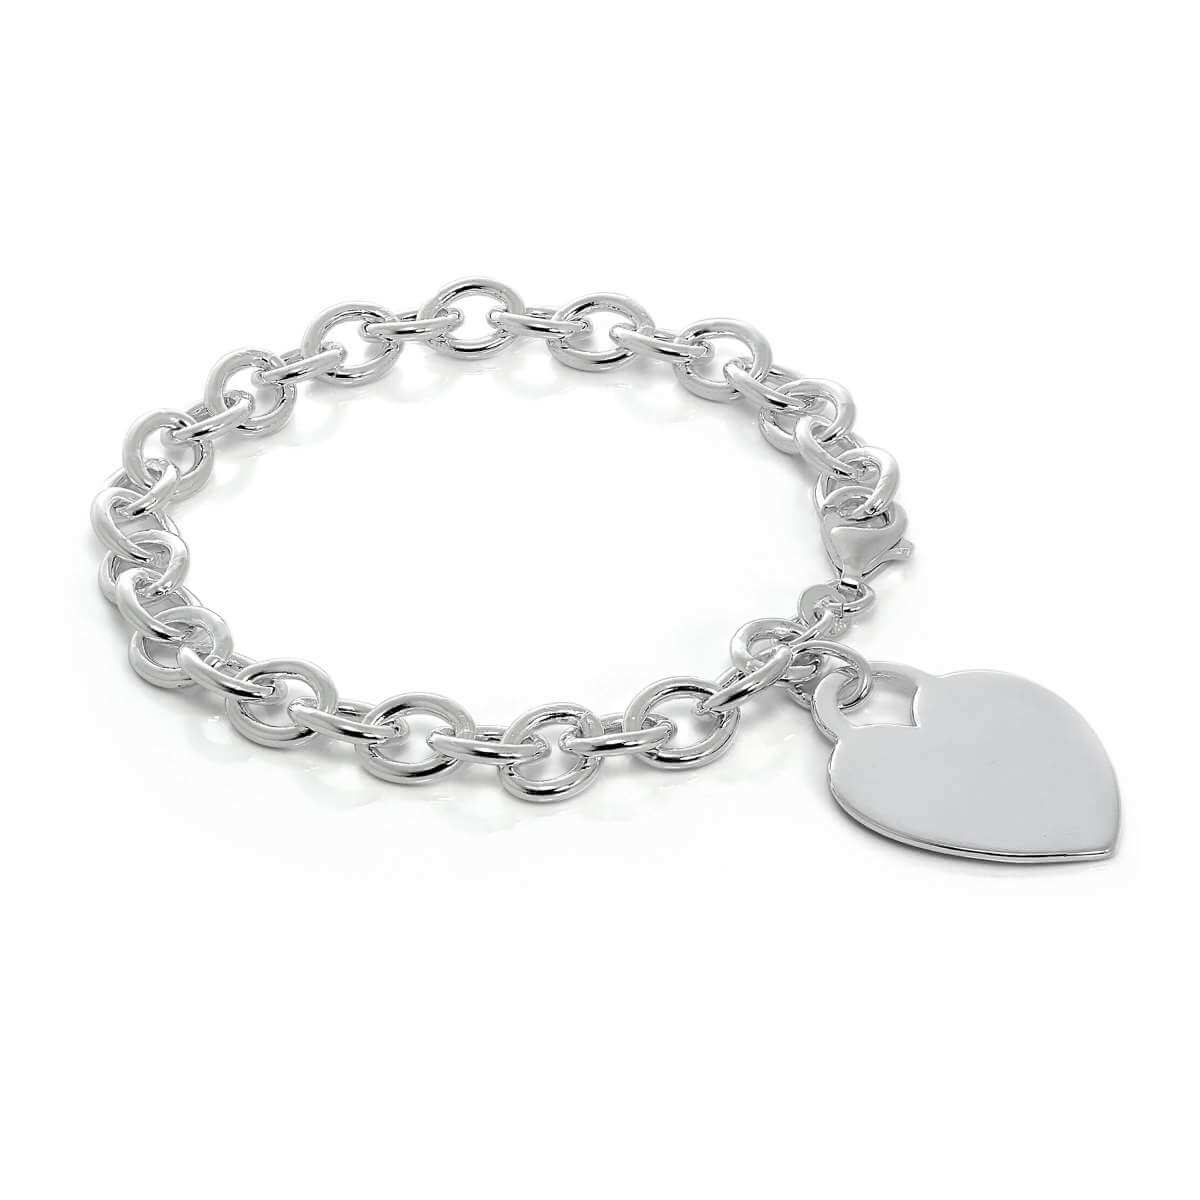 Sterling Silver 7 Inch Charm Bracelet with Large Engravable Heart Tag